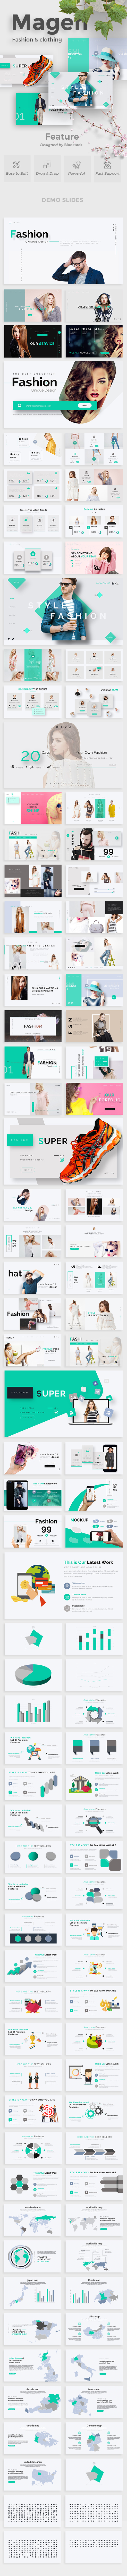 Magen Fashion & Clothing Keynote Template - Creative Keynote Templates